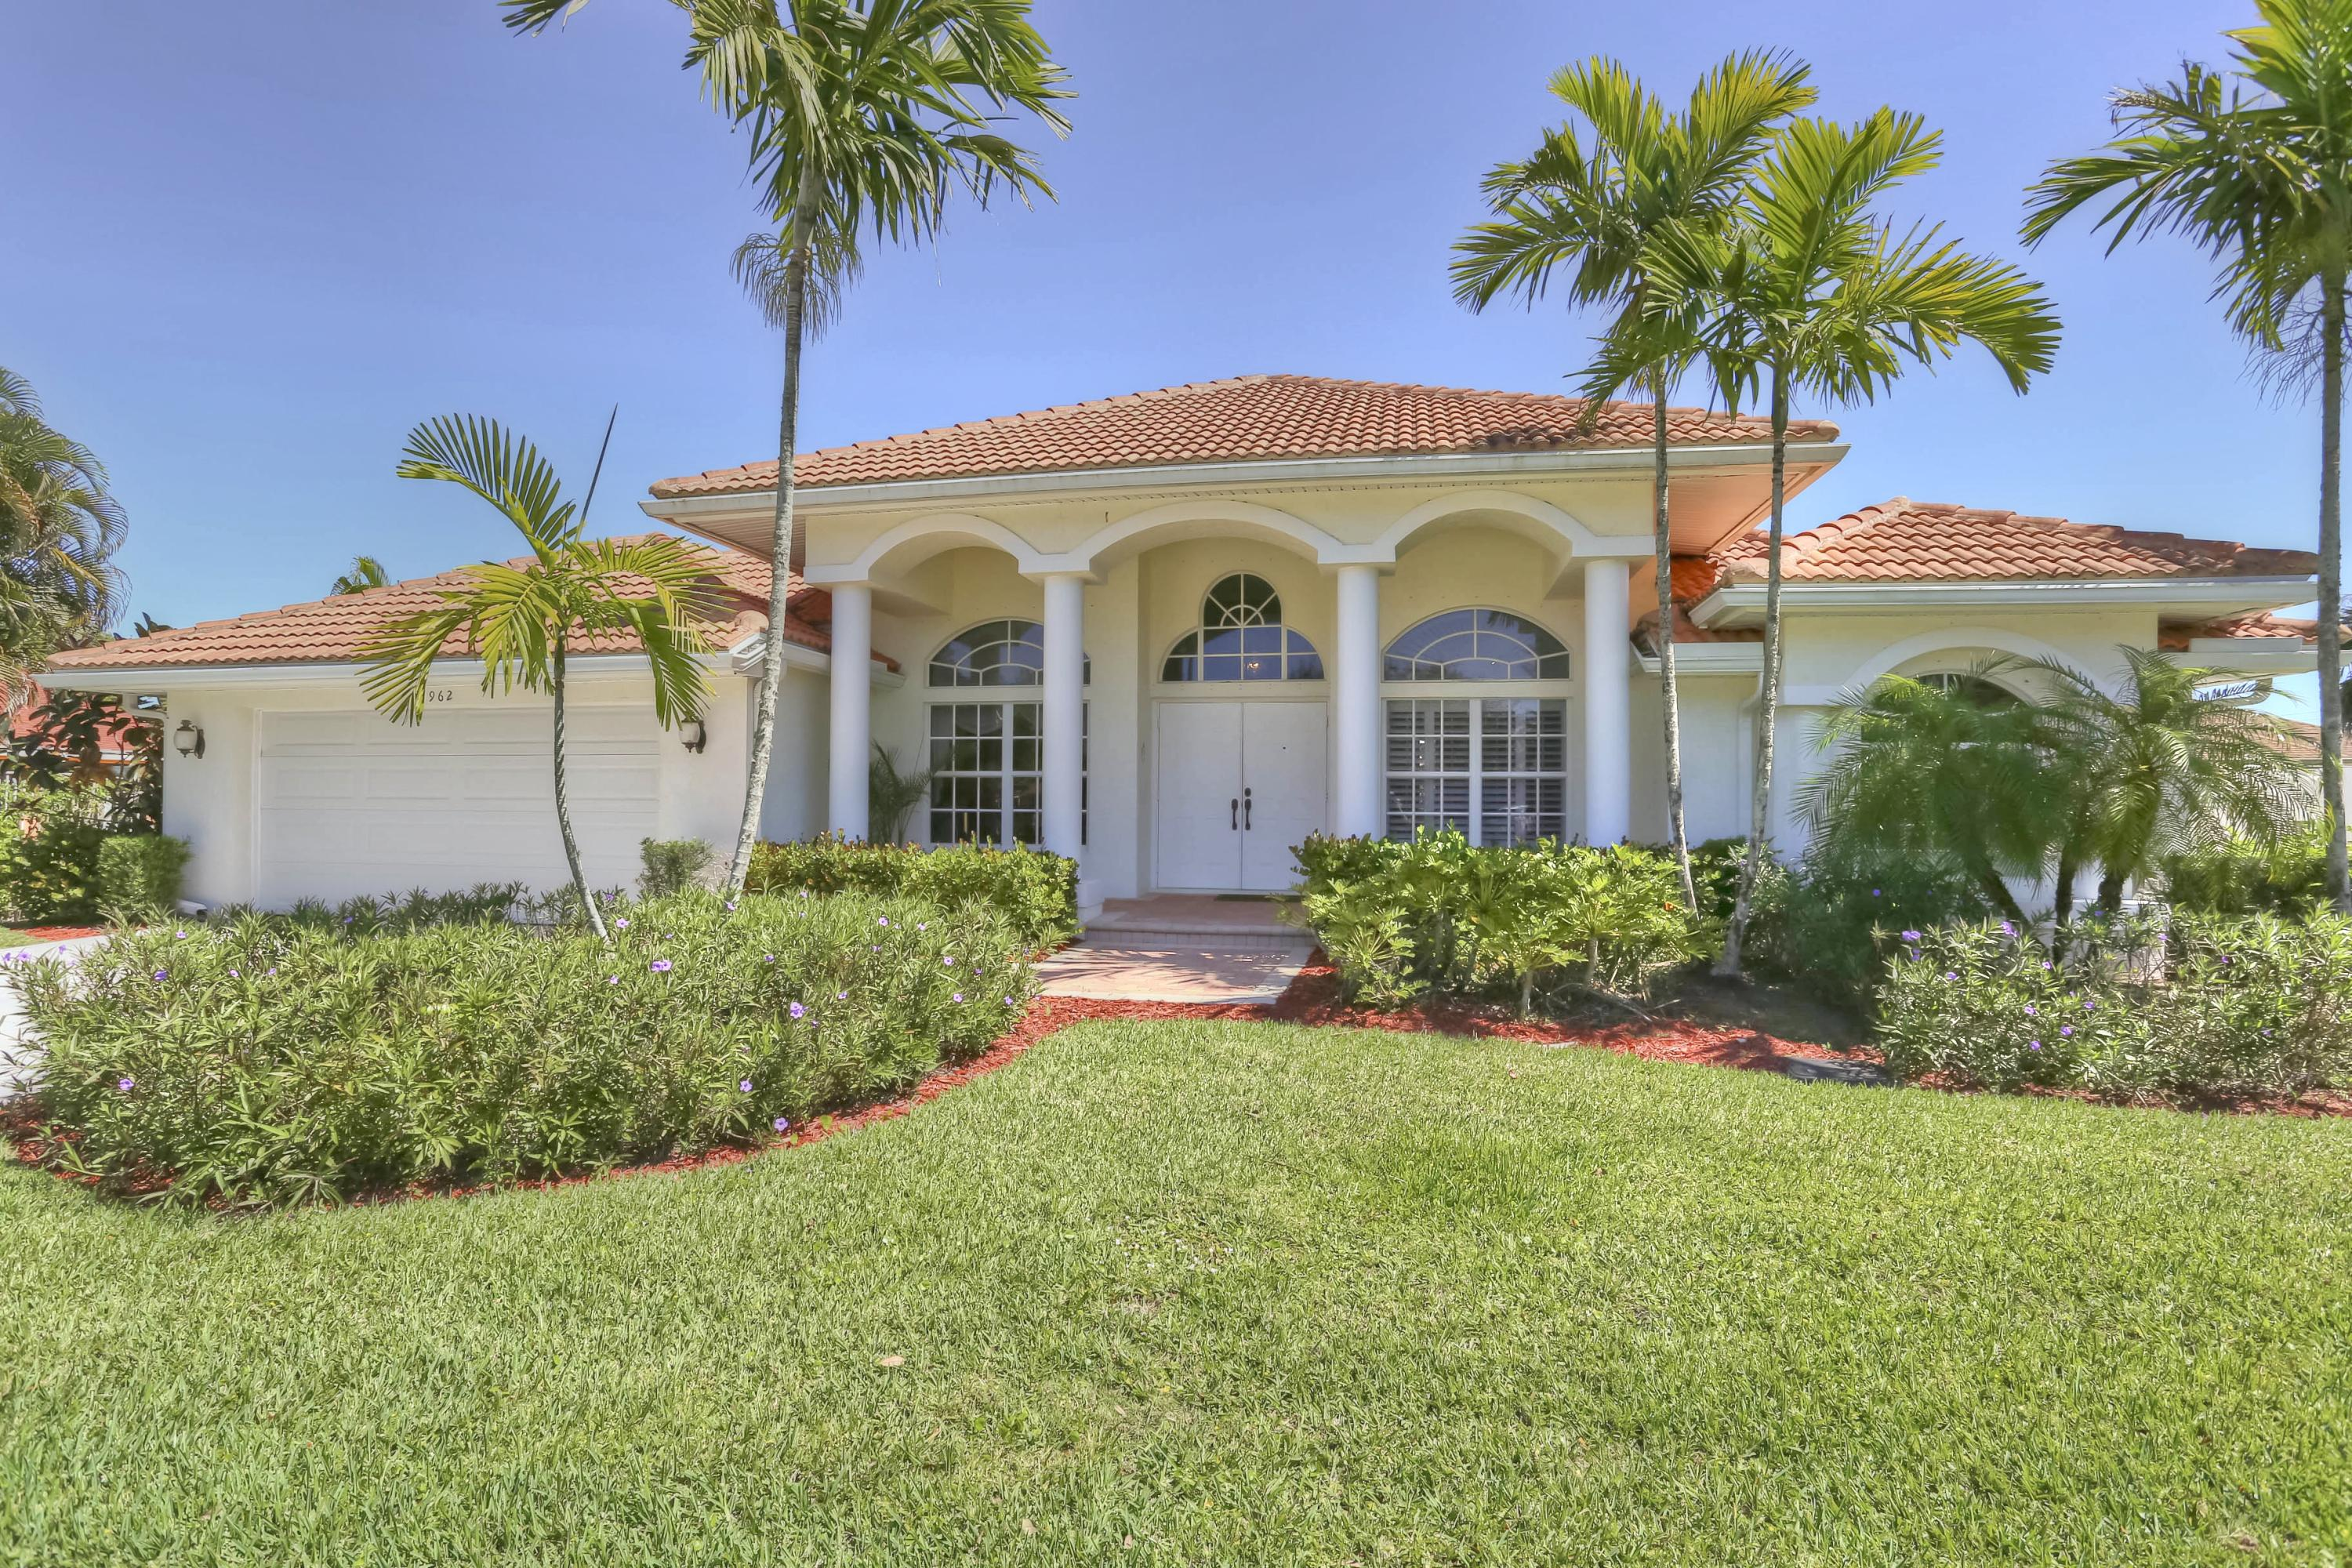 2962 Bolton Court, Wellington, Florida 33414, 3 Bedrooms Bedrooms, ,2 BathroomsBathrooms,Single Family,For Rent,Greenview Shores,Bolton,1,RX-10577513